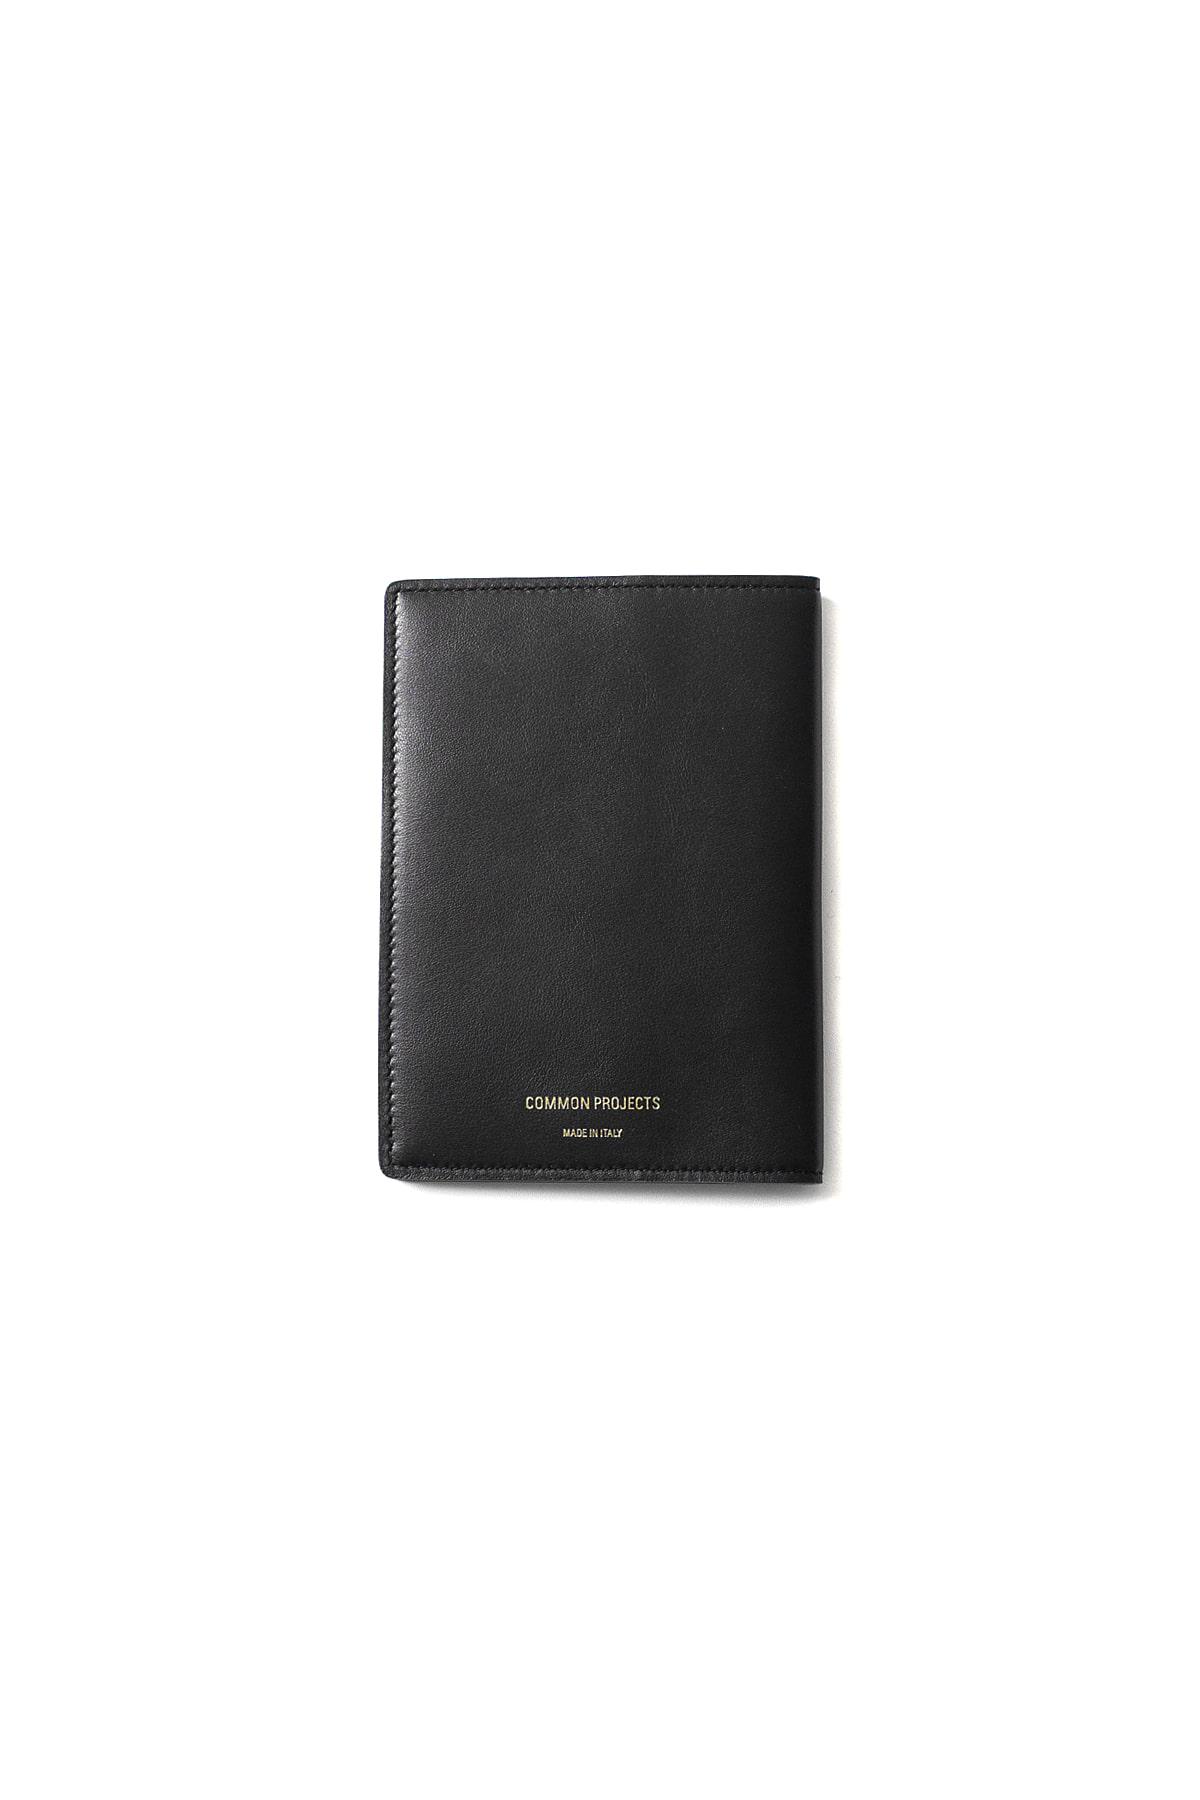 Common Projects : Passport Folio In Softy Leather (Black)